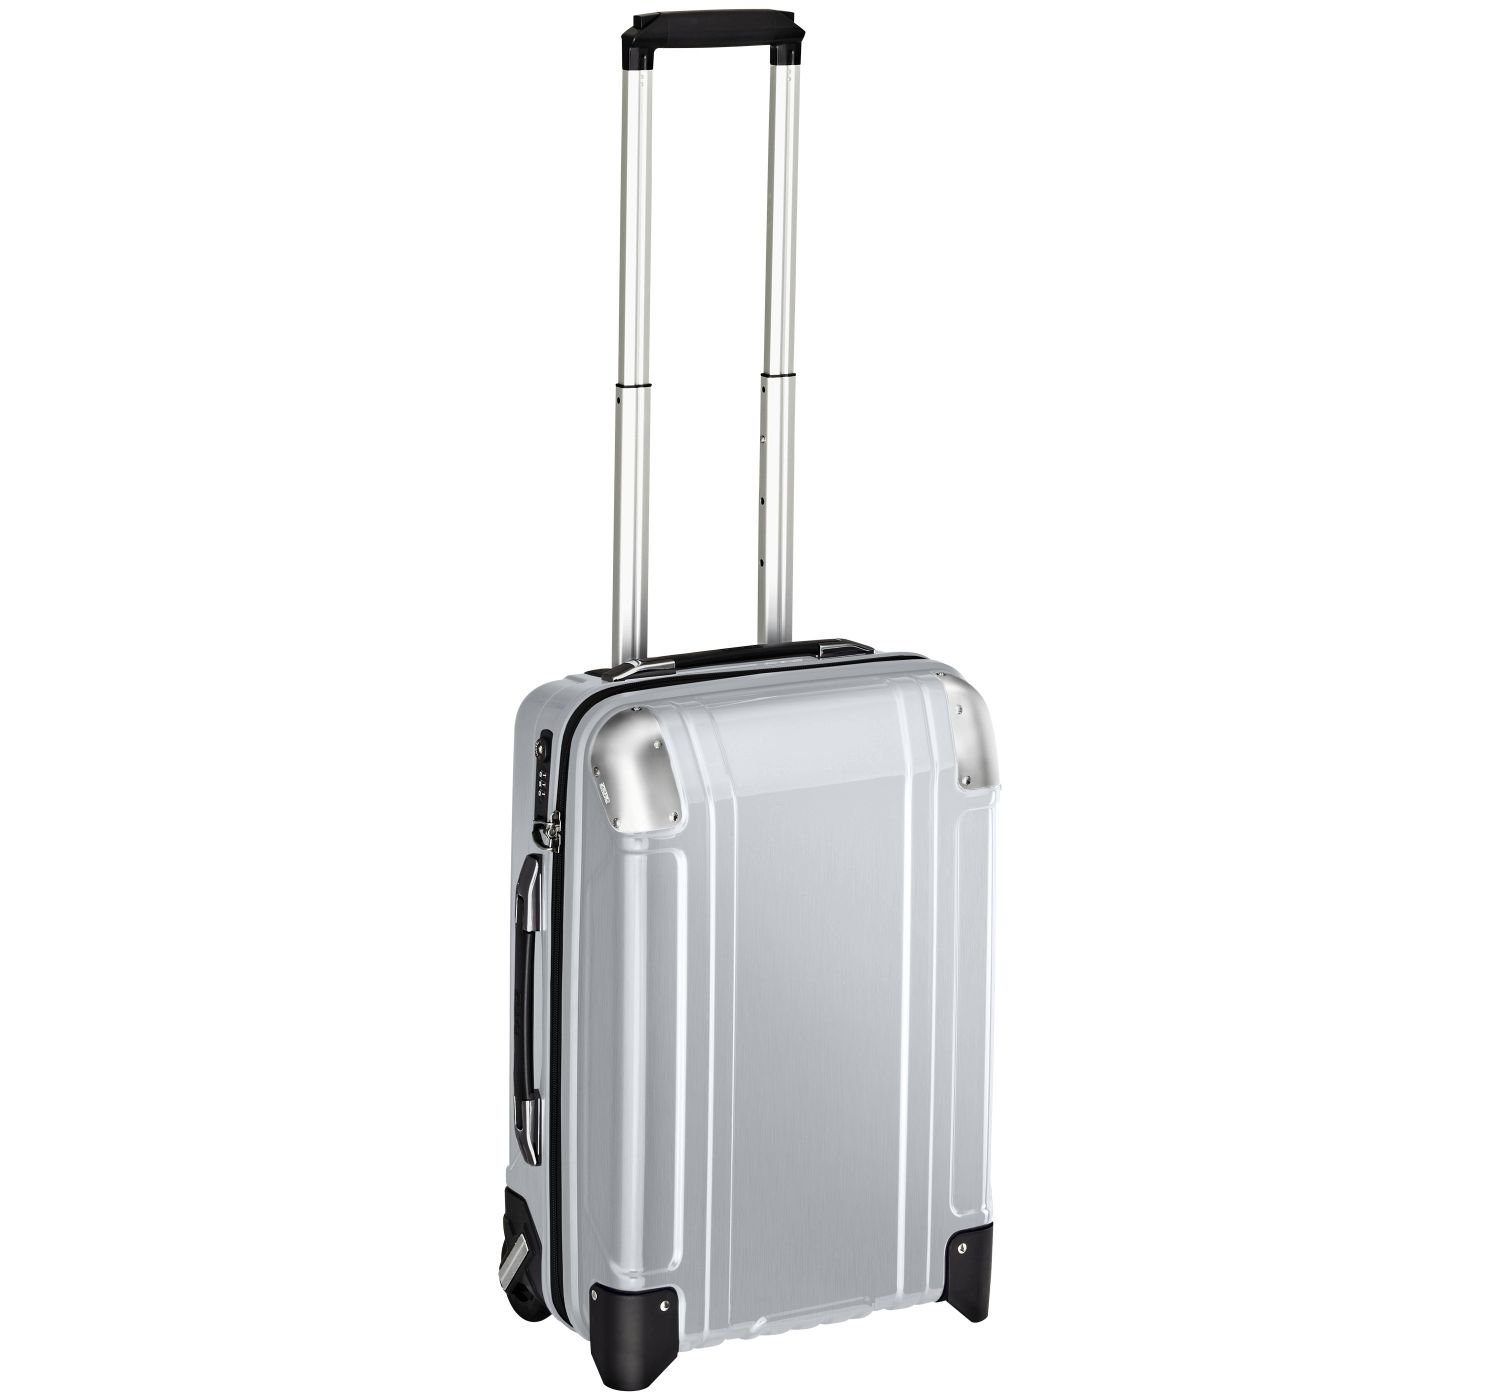 Geo Polycarbonate - Carry-On Luggage - фото 1